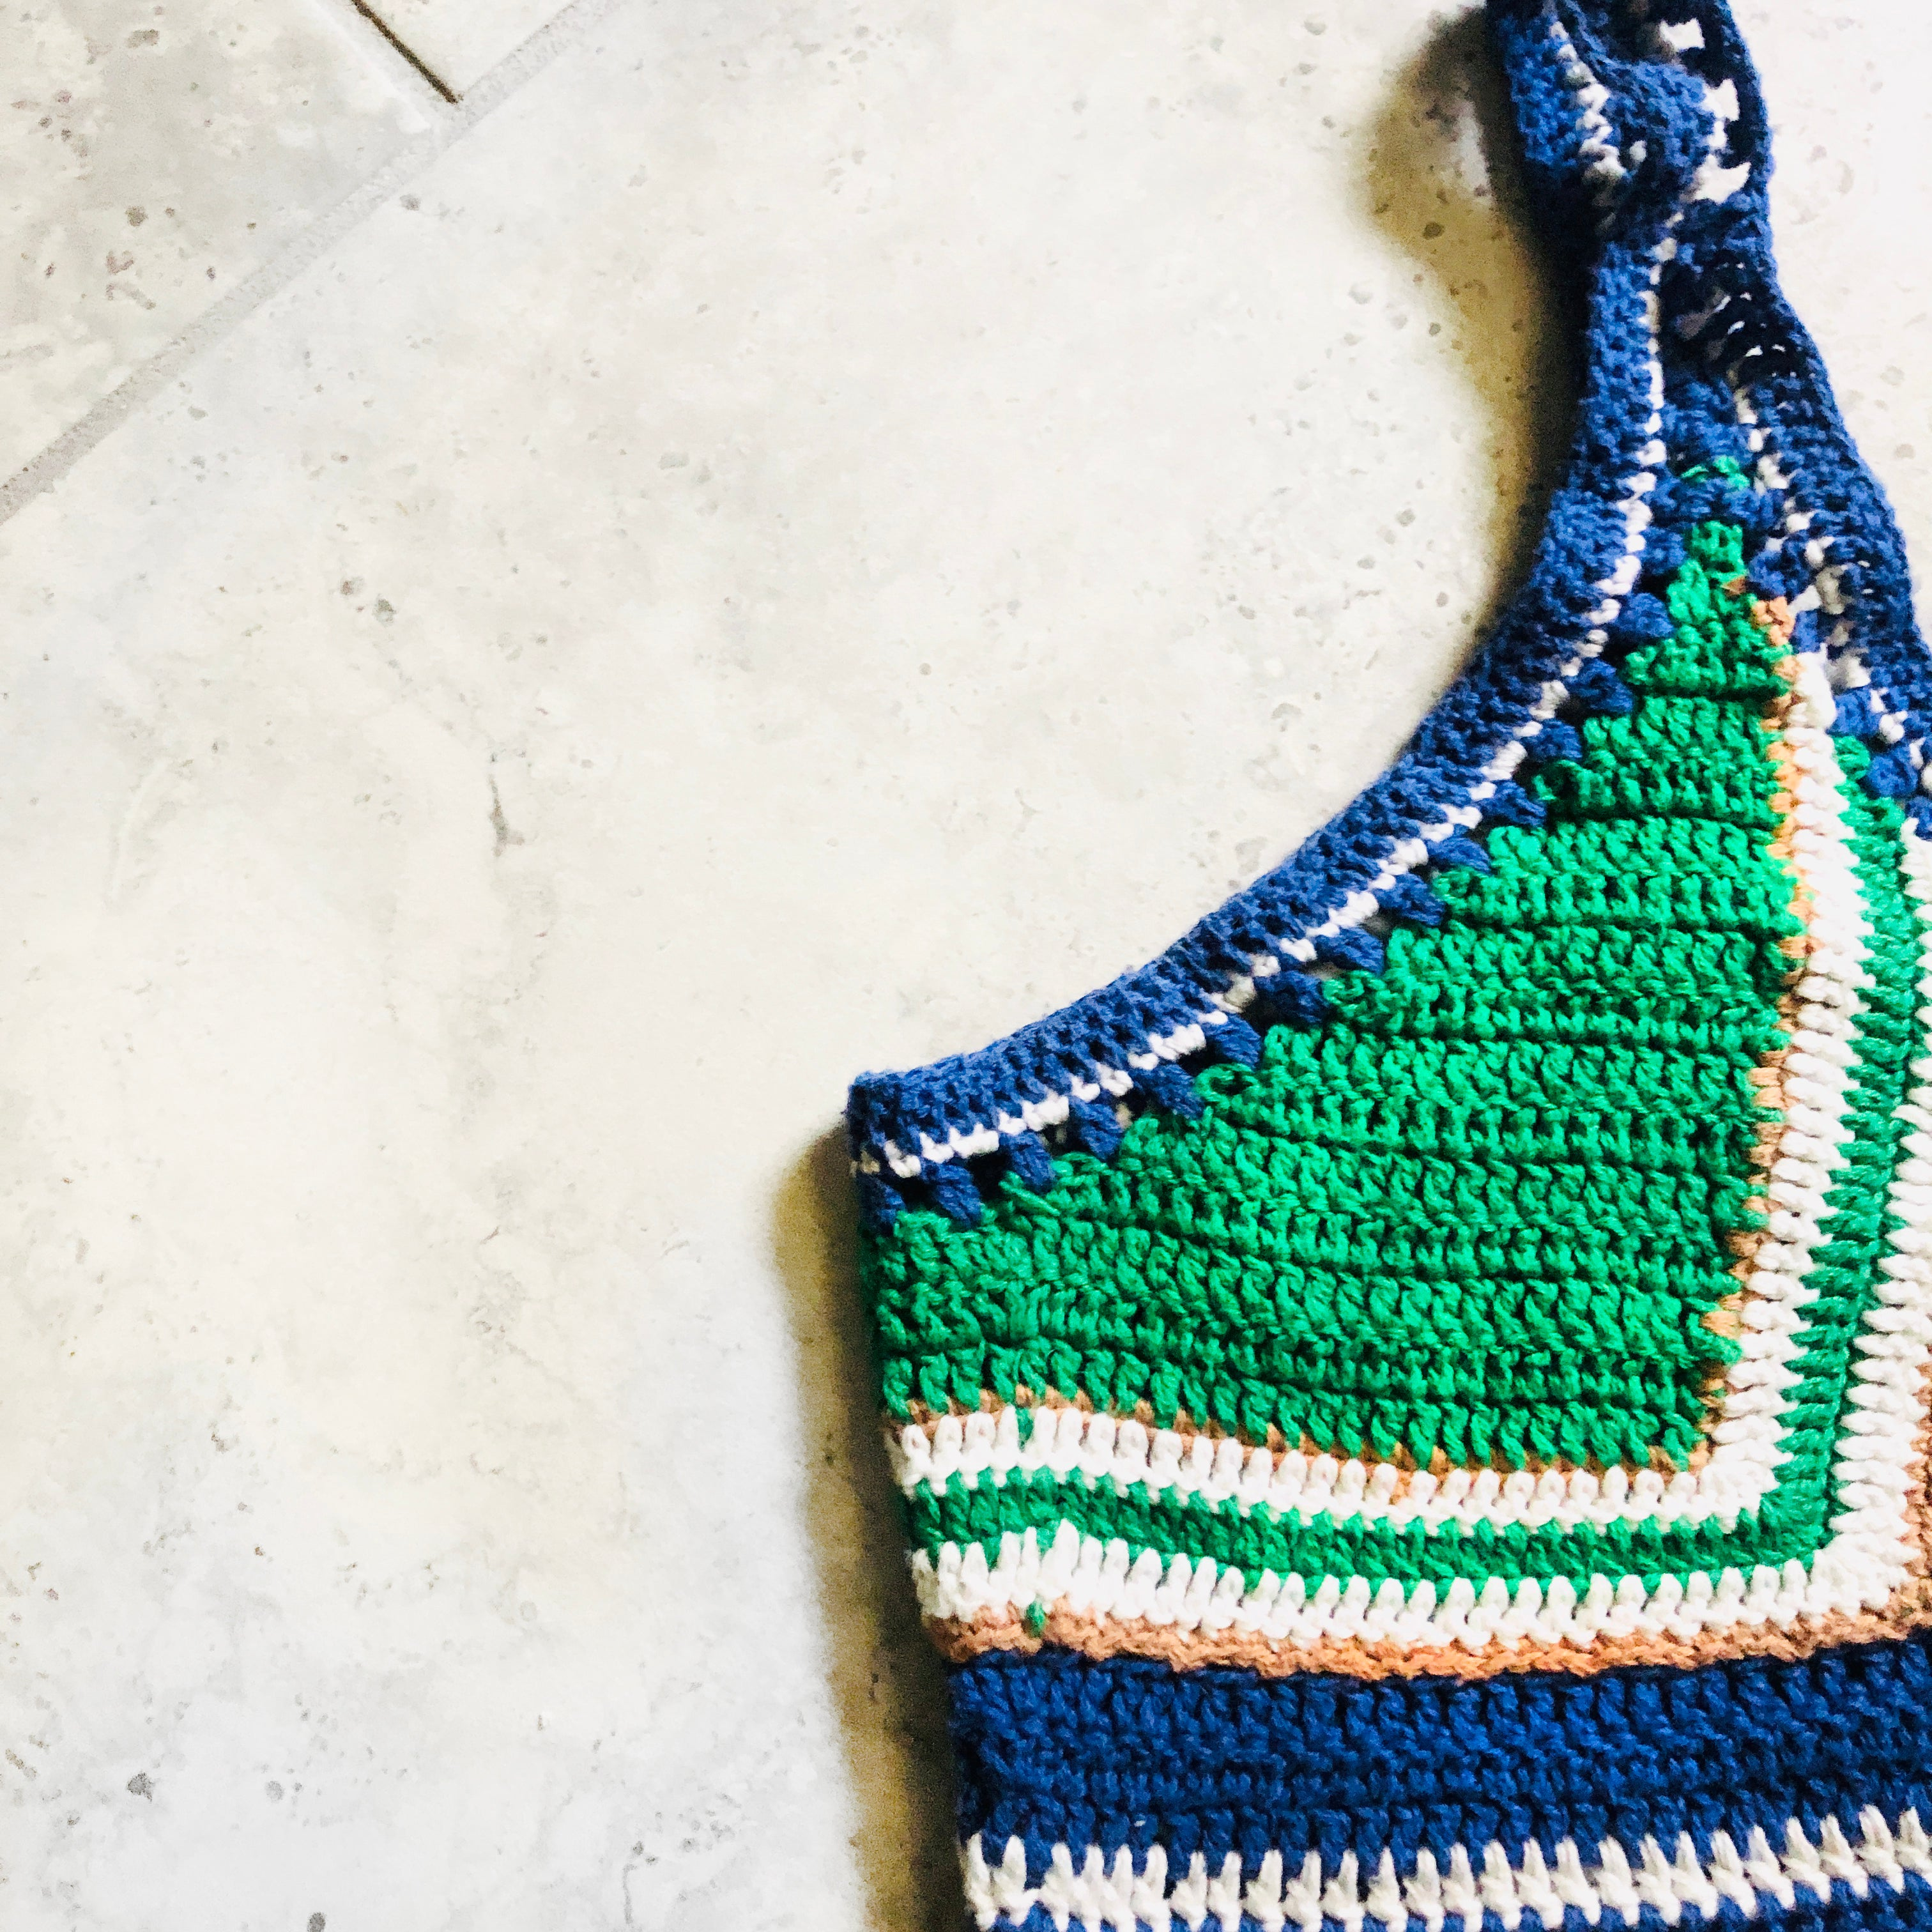 Crochet blue green & white cropped top